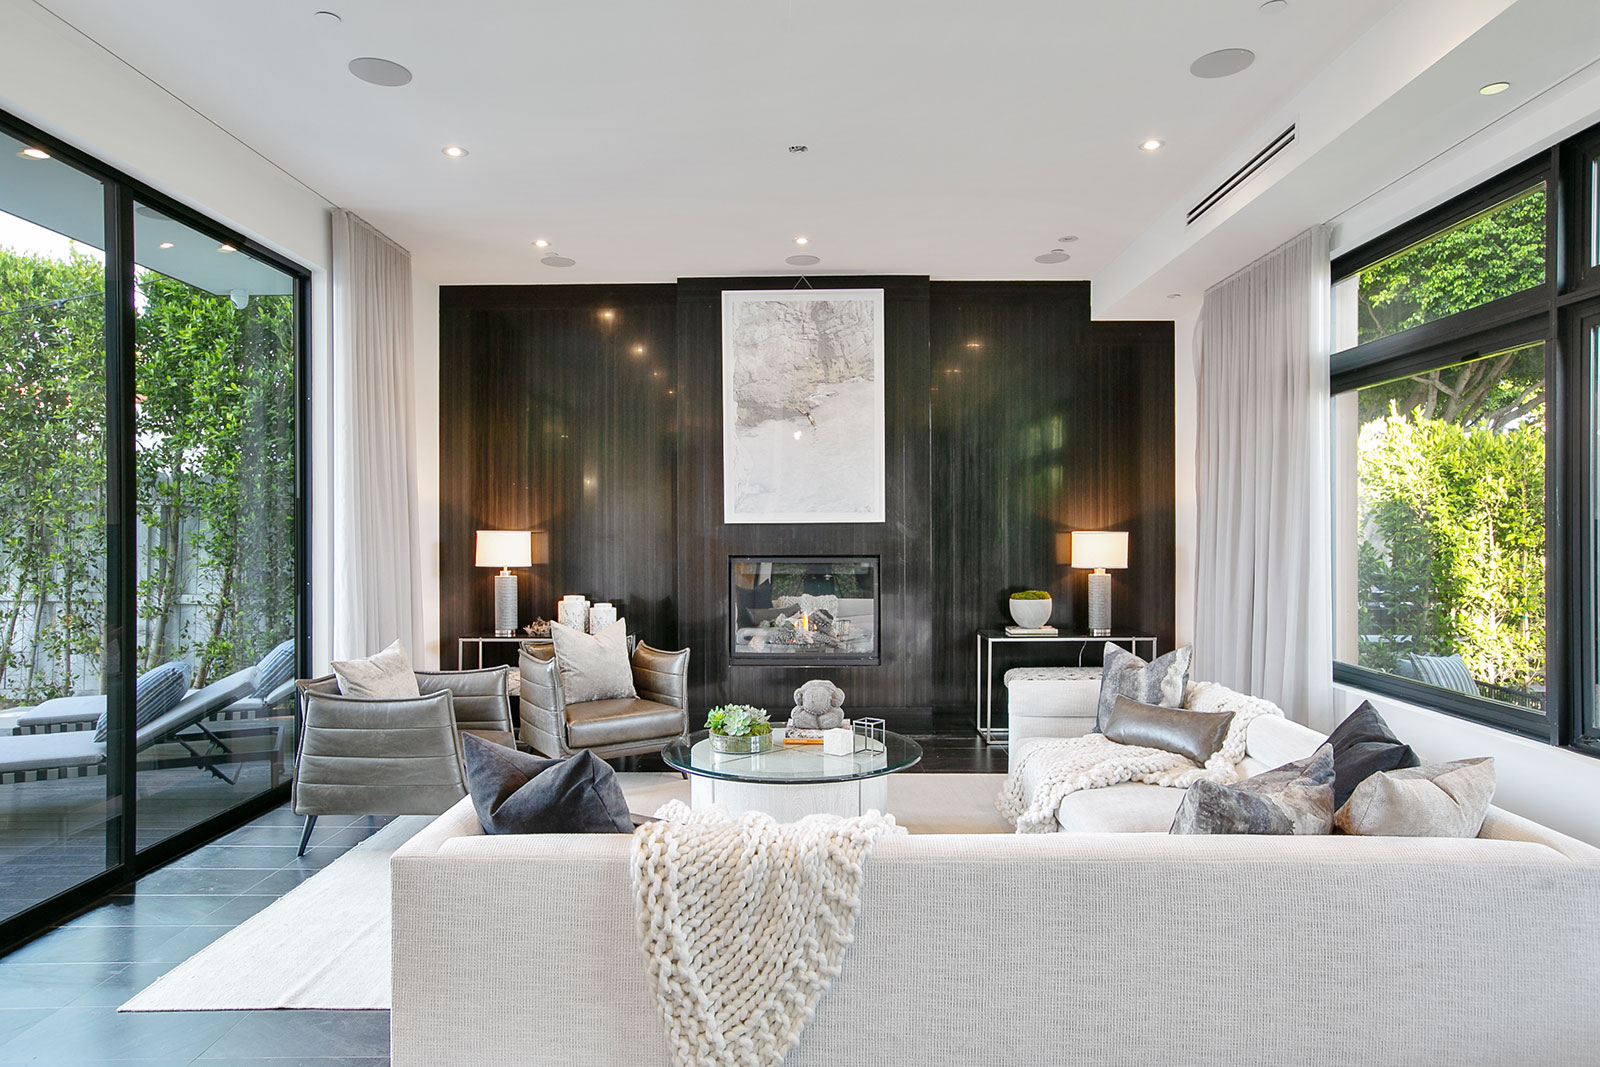 Fireplace and couch in Hollywood home